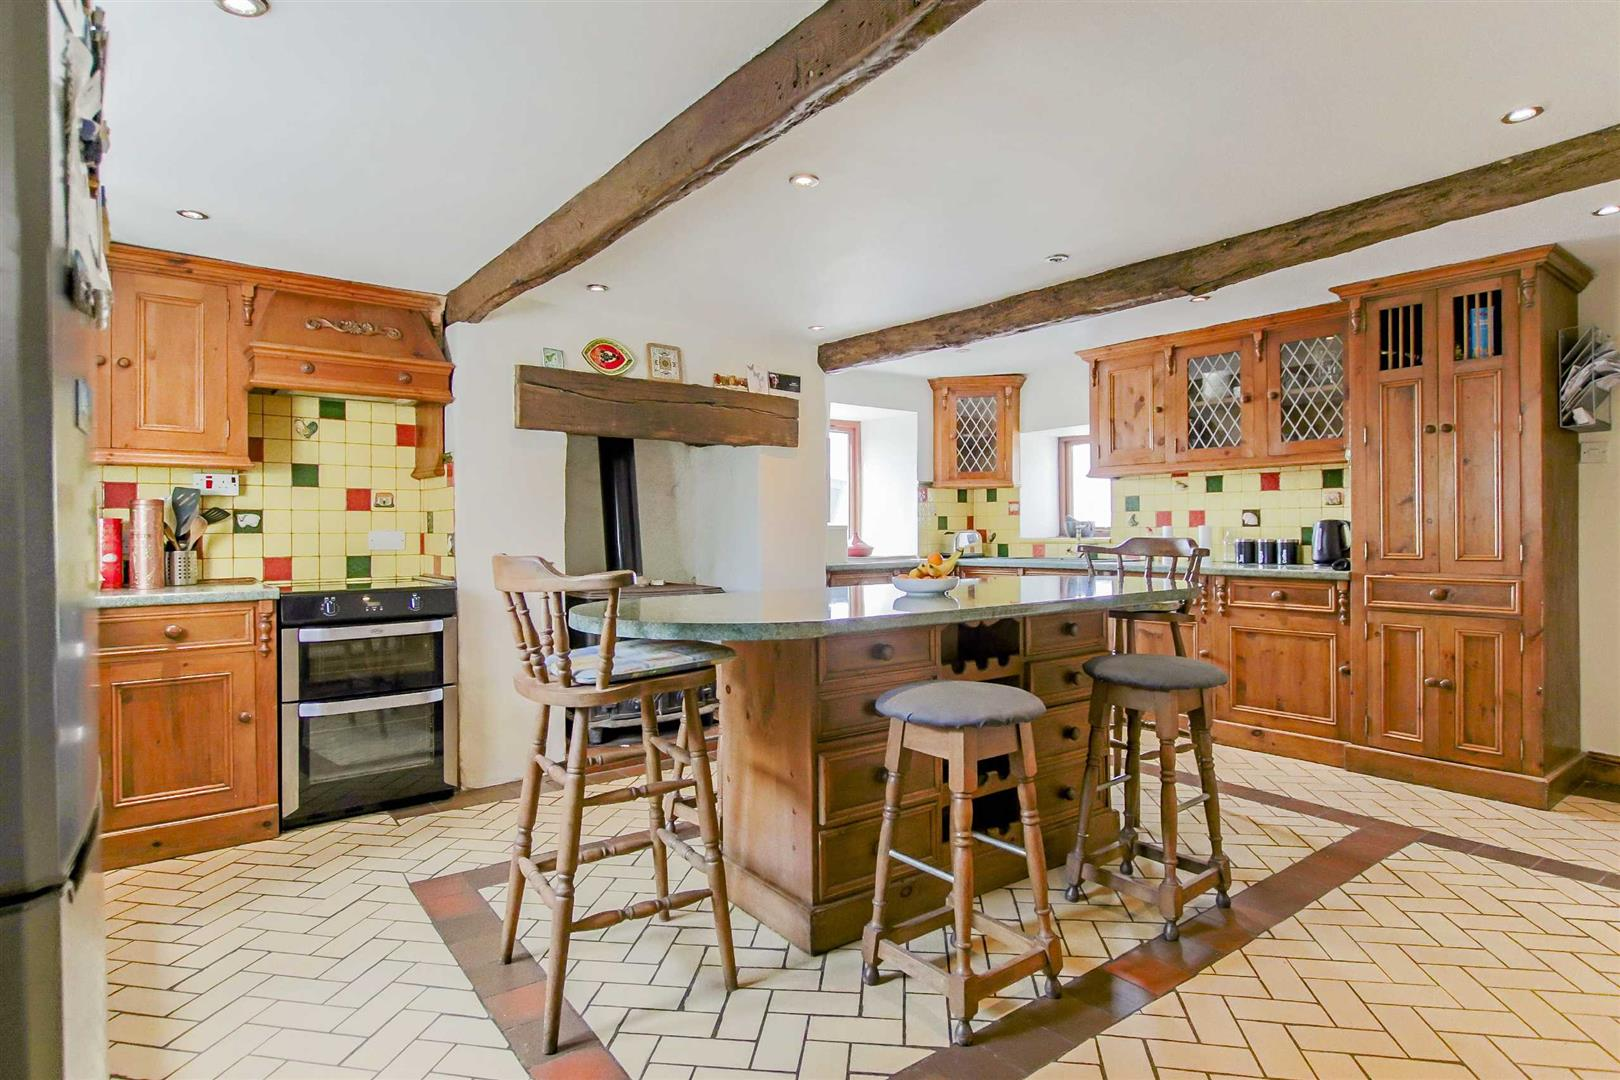 5 Bedroom Farmhouse For Sale - Image 44